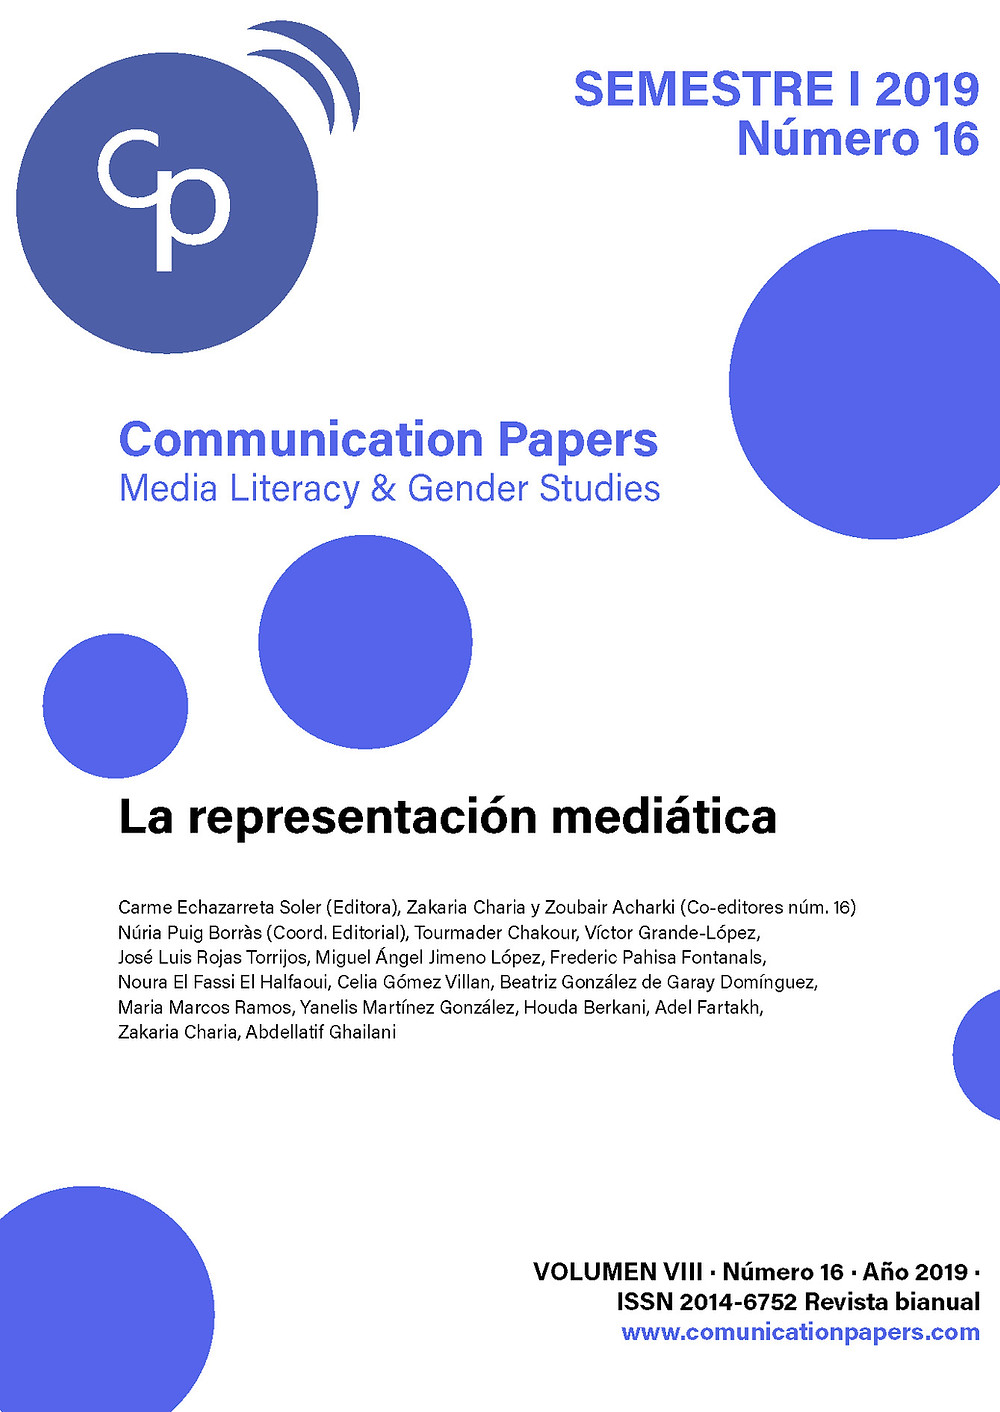 Communication Papers n.16